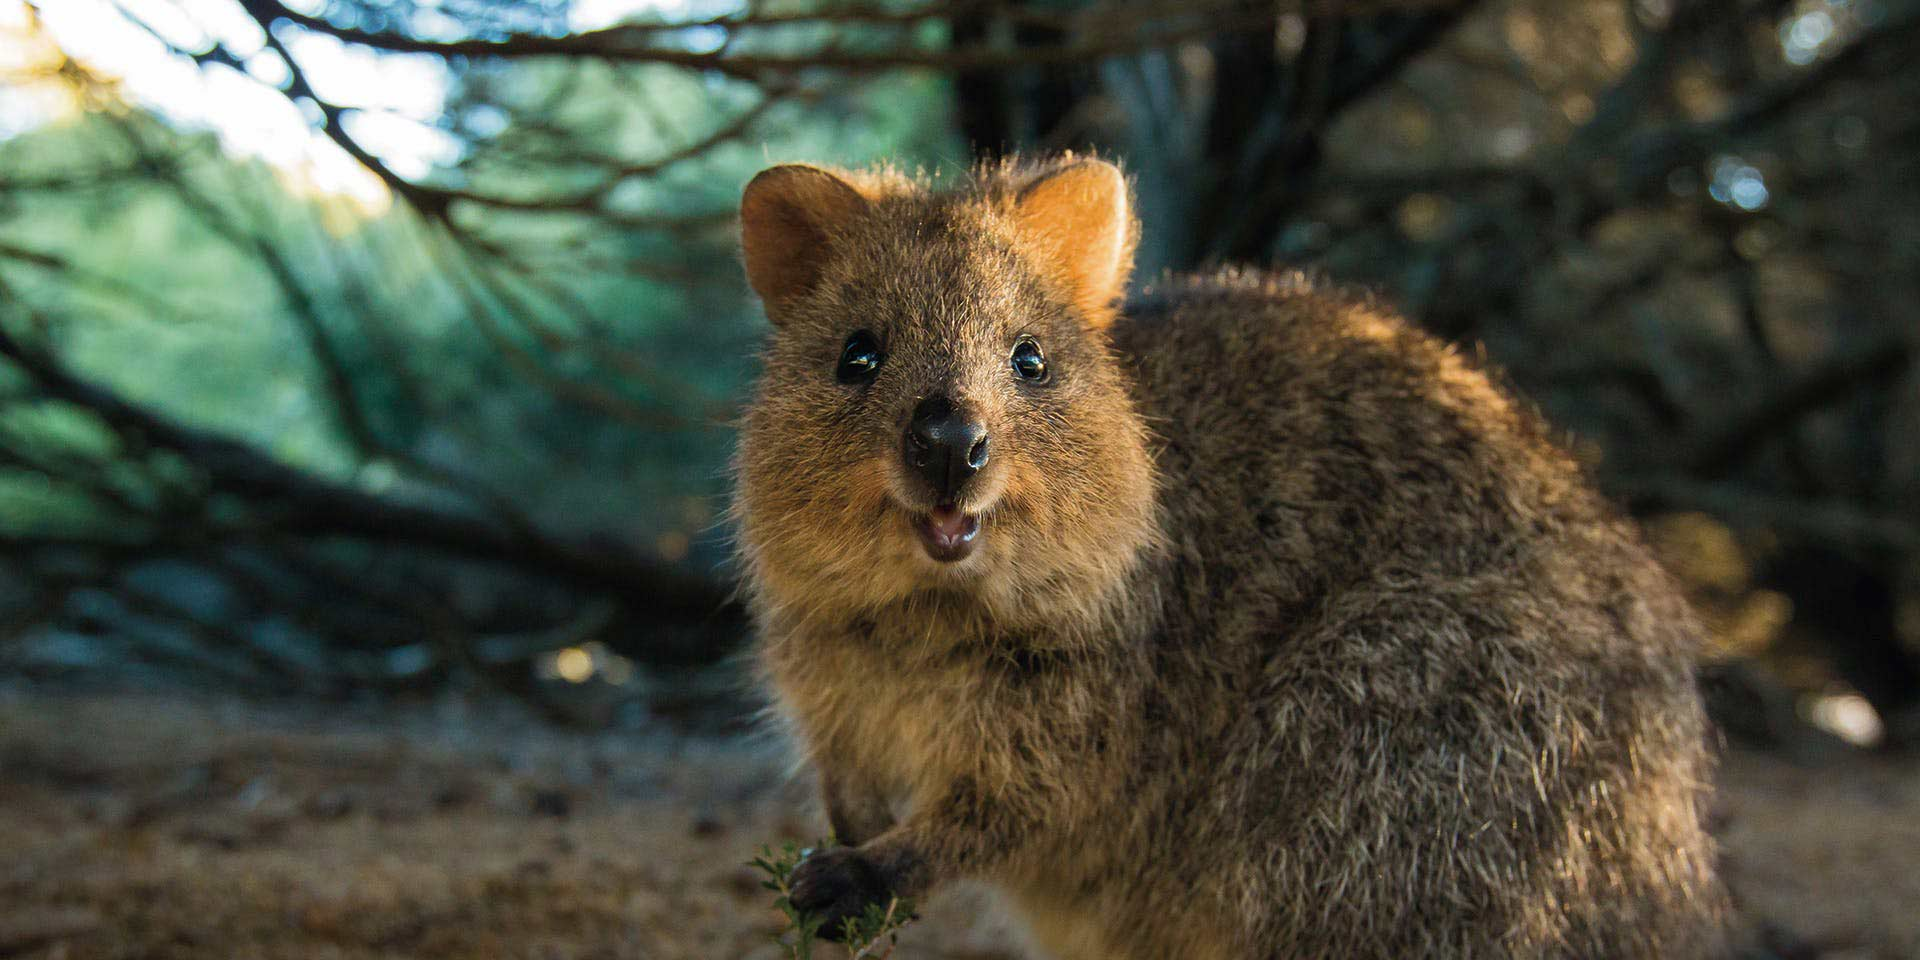 Quokka - Our Treasure